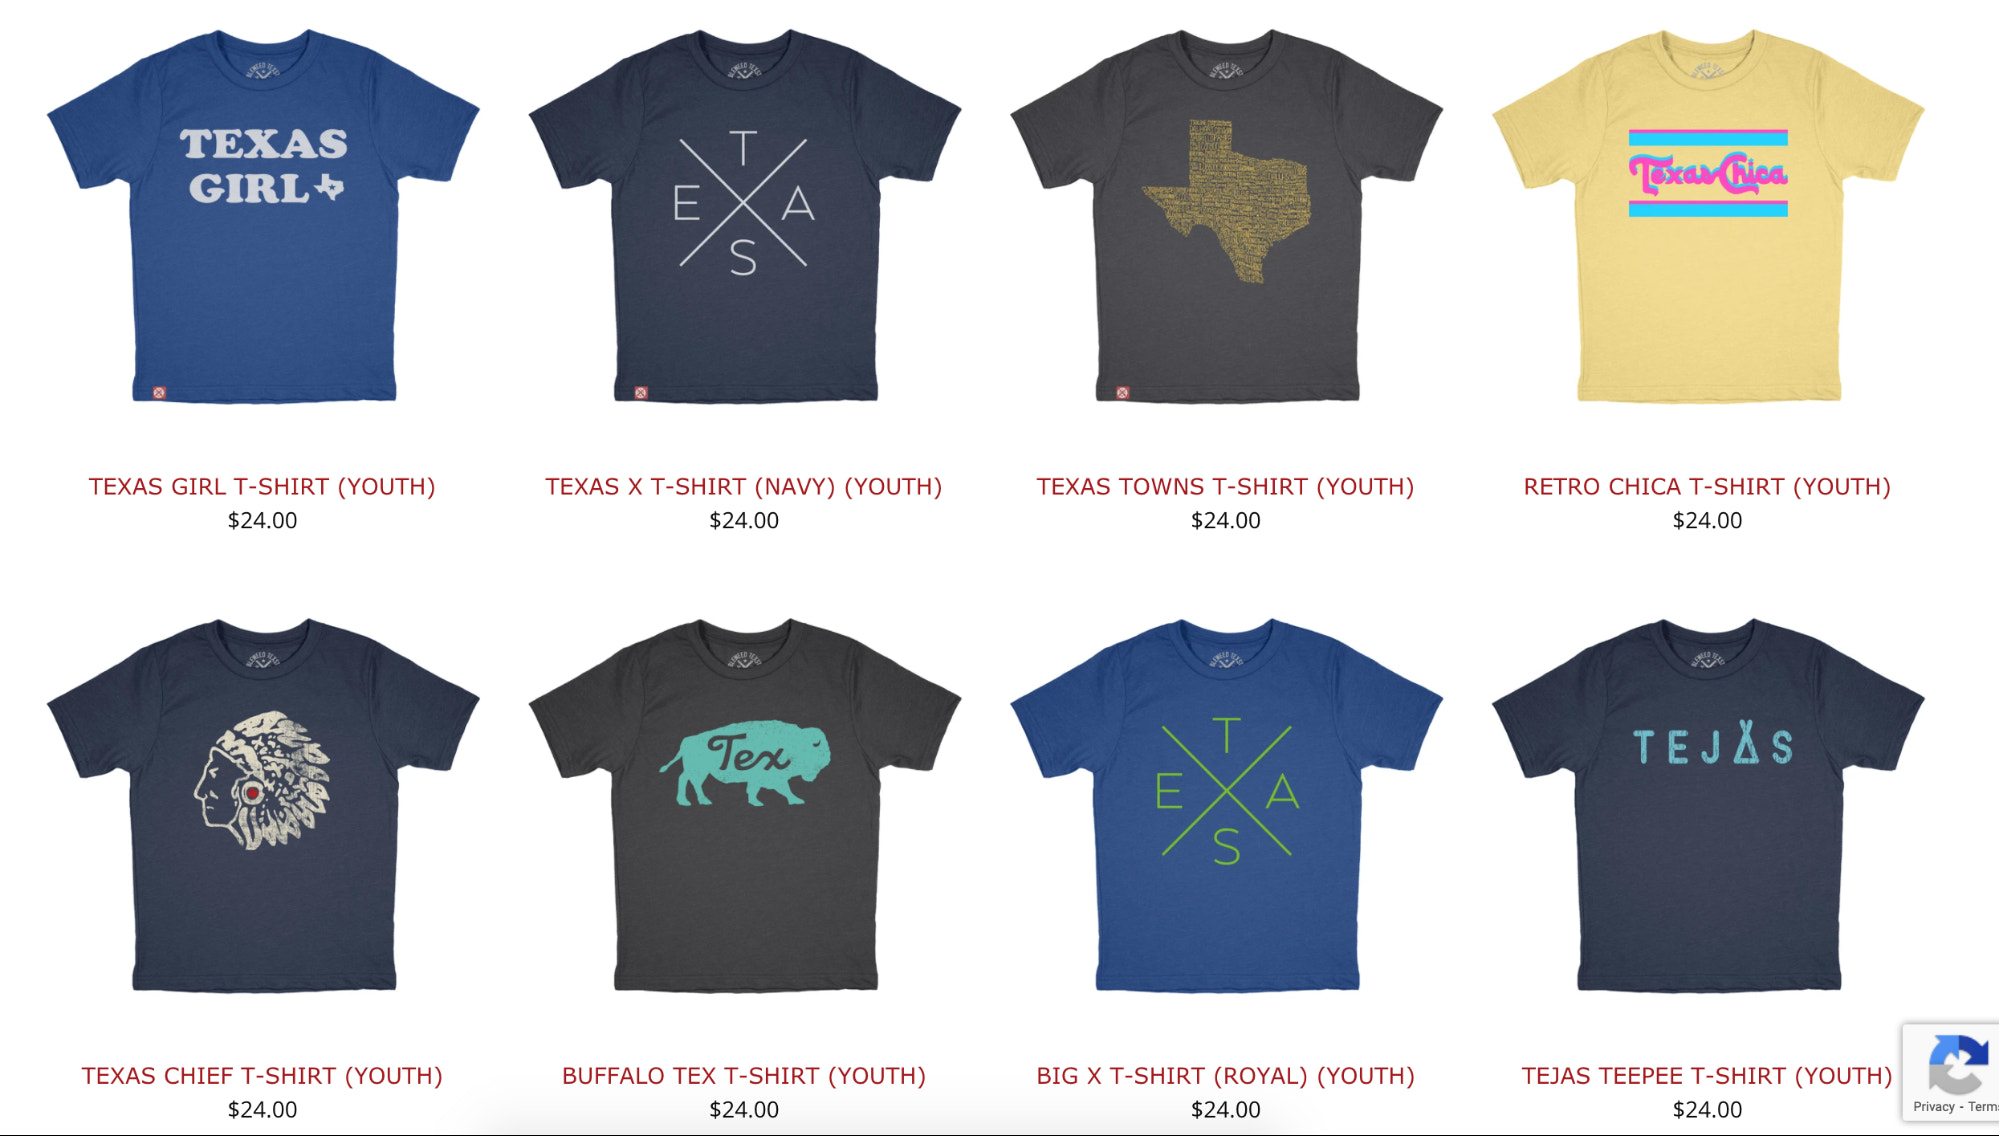 Tumbleweed TexStyles sells both adult and children's t-shirt styles